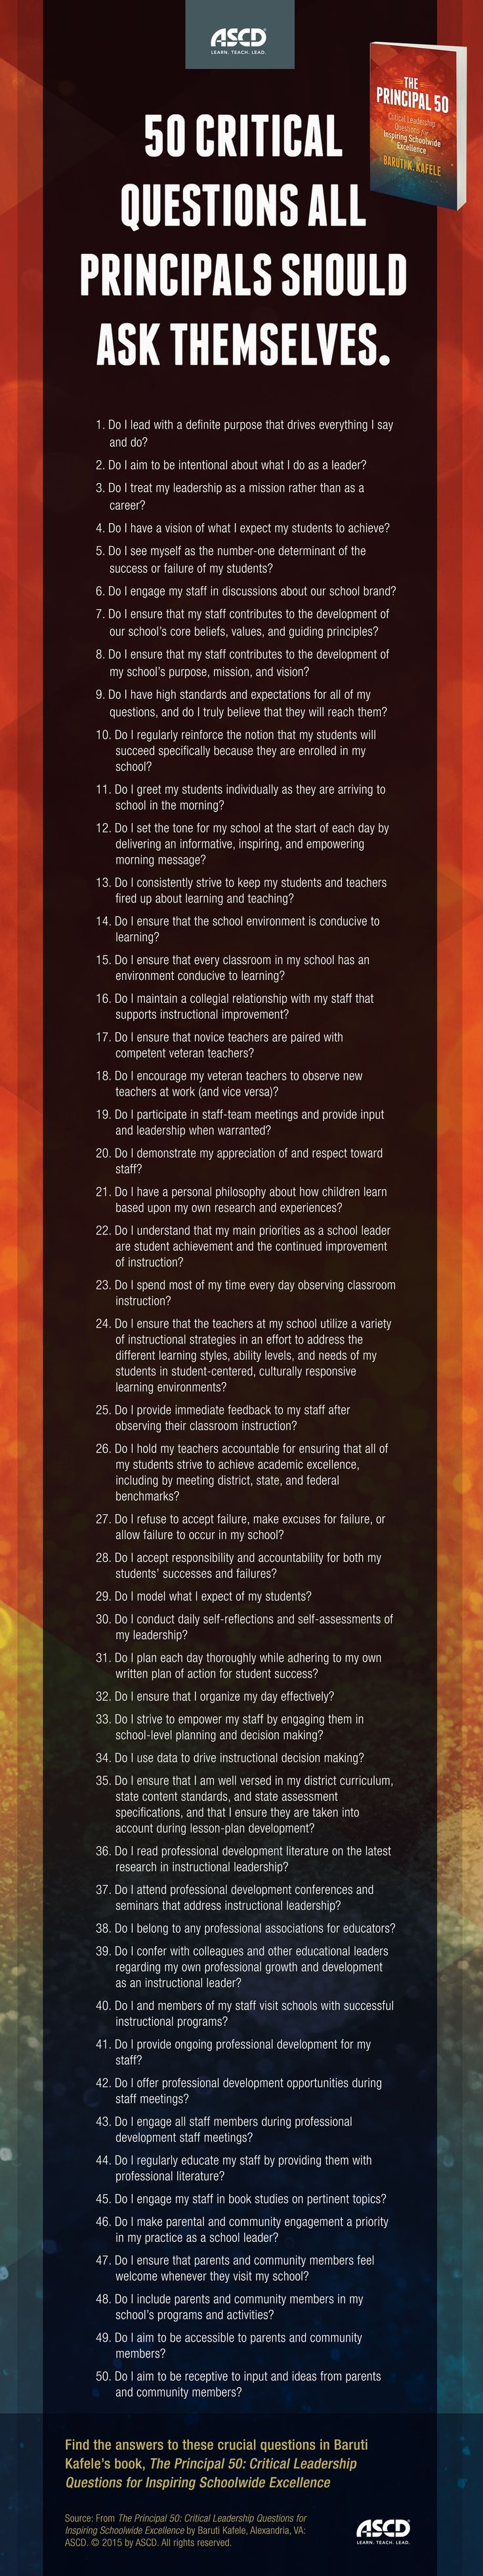 The Principal 50: Critical Leadership Questions for Inspiring Schoolwide Excellence!   What a FANTASTIC reflection tool! LOVE THIS!